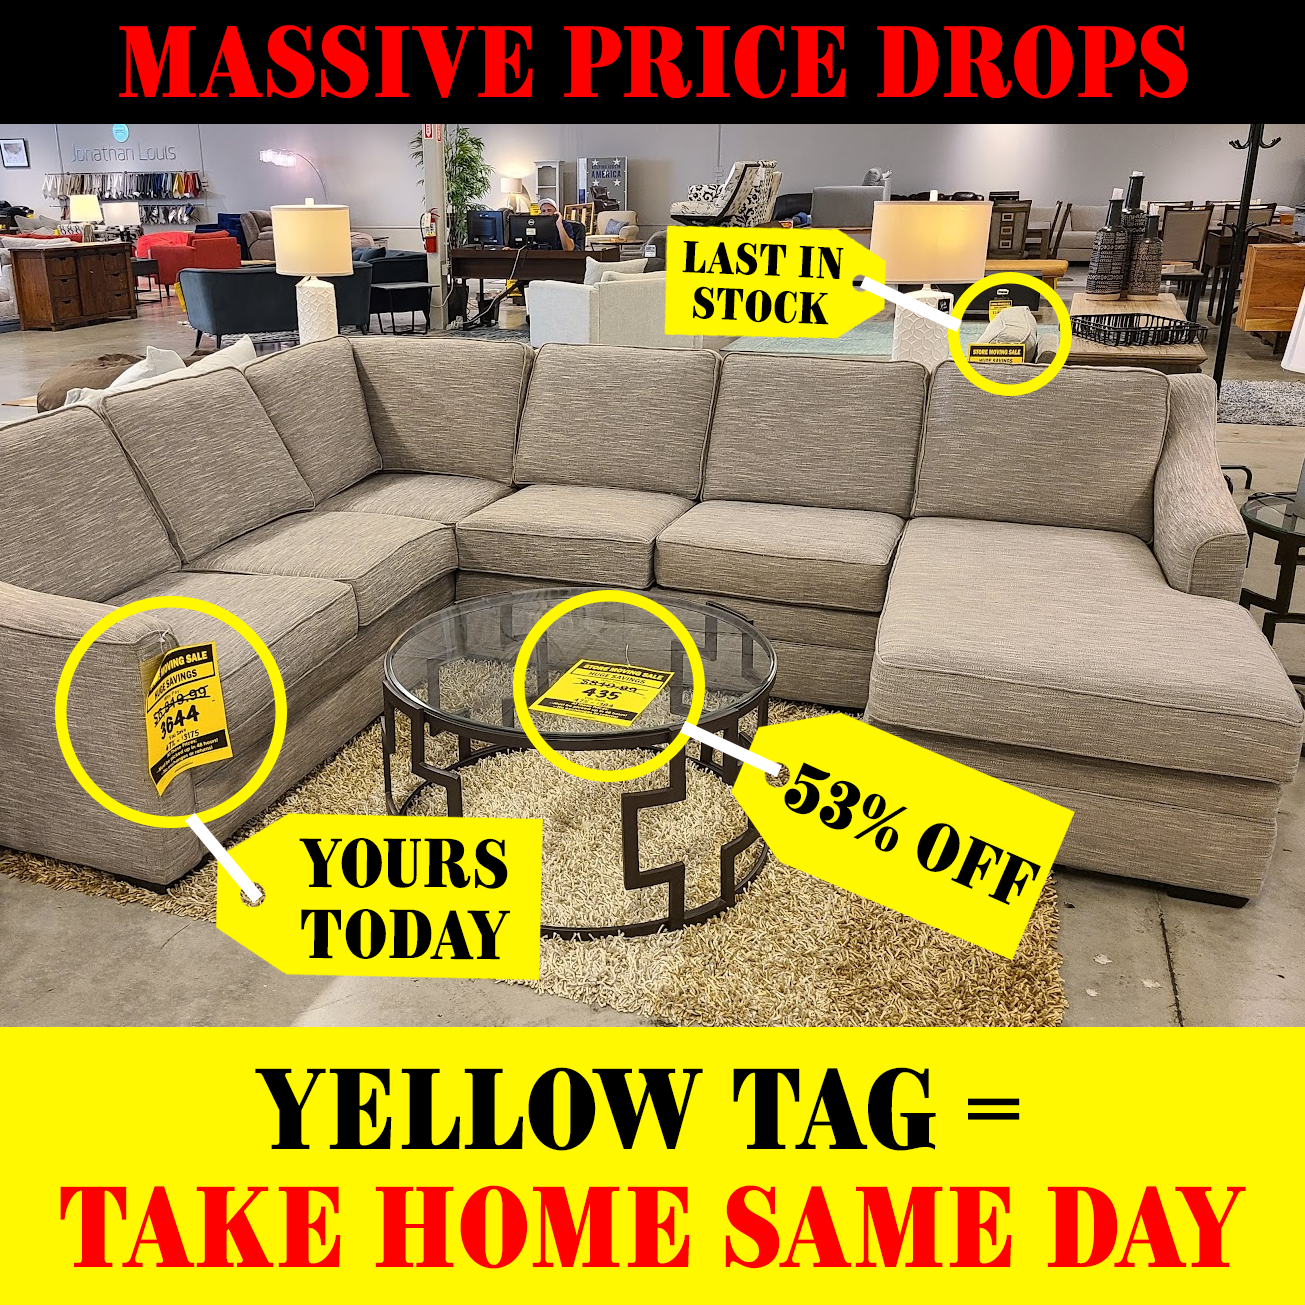 MASSIVE PRICE DROPS - YELLOW TAG MEANS TAKE HOME TODAY